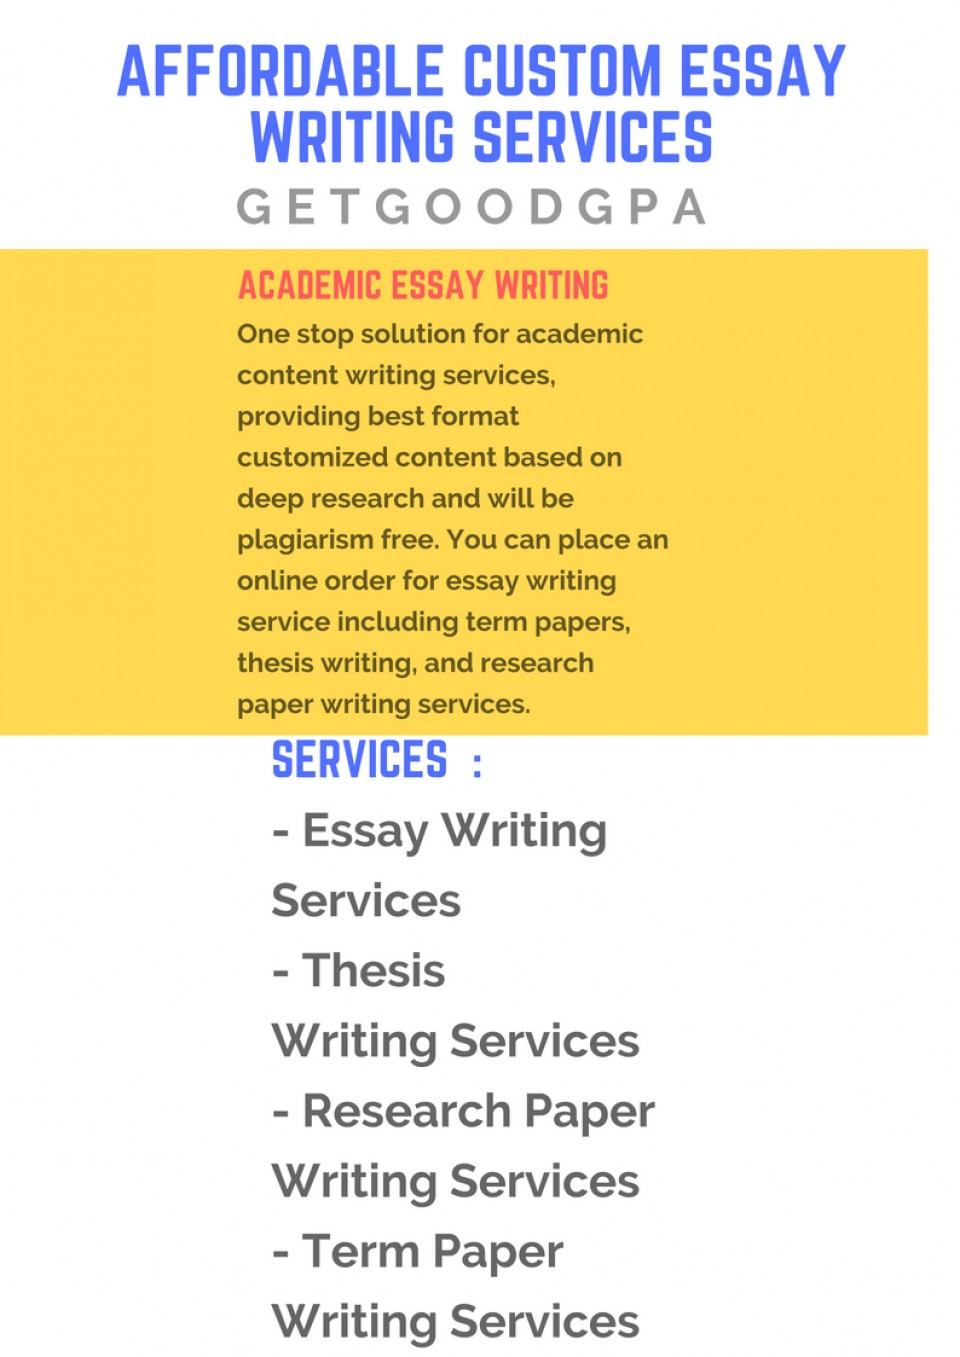 002 Research Paper Writing Services Archaicawful In Pakistan Mumbai Service Online 960